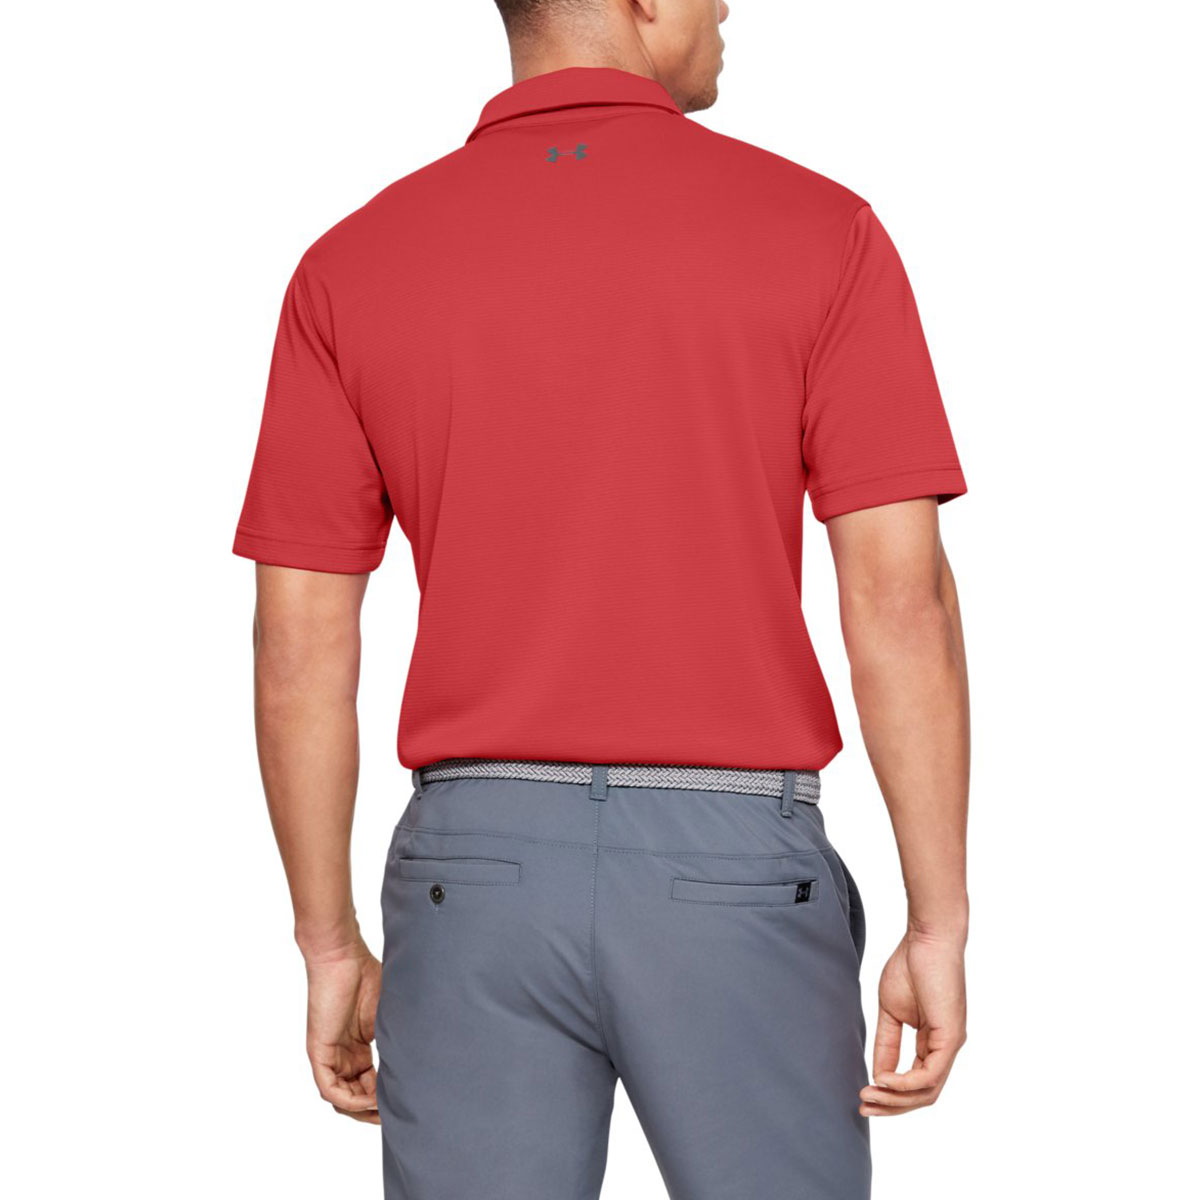 Under-Armour-Mens-2019-Golf-Tech-Wicking-Textured-Soft-Light-Polo-Shirt thumbnail 51